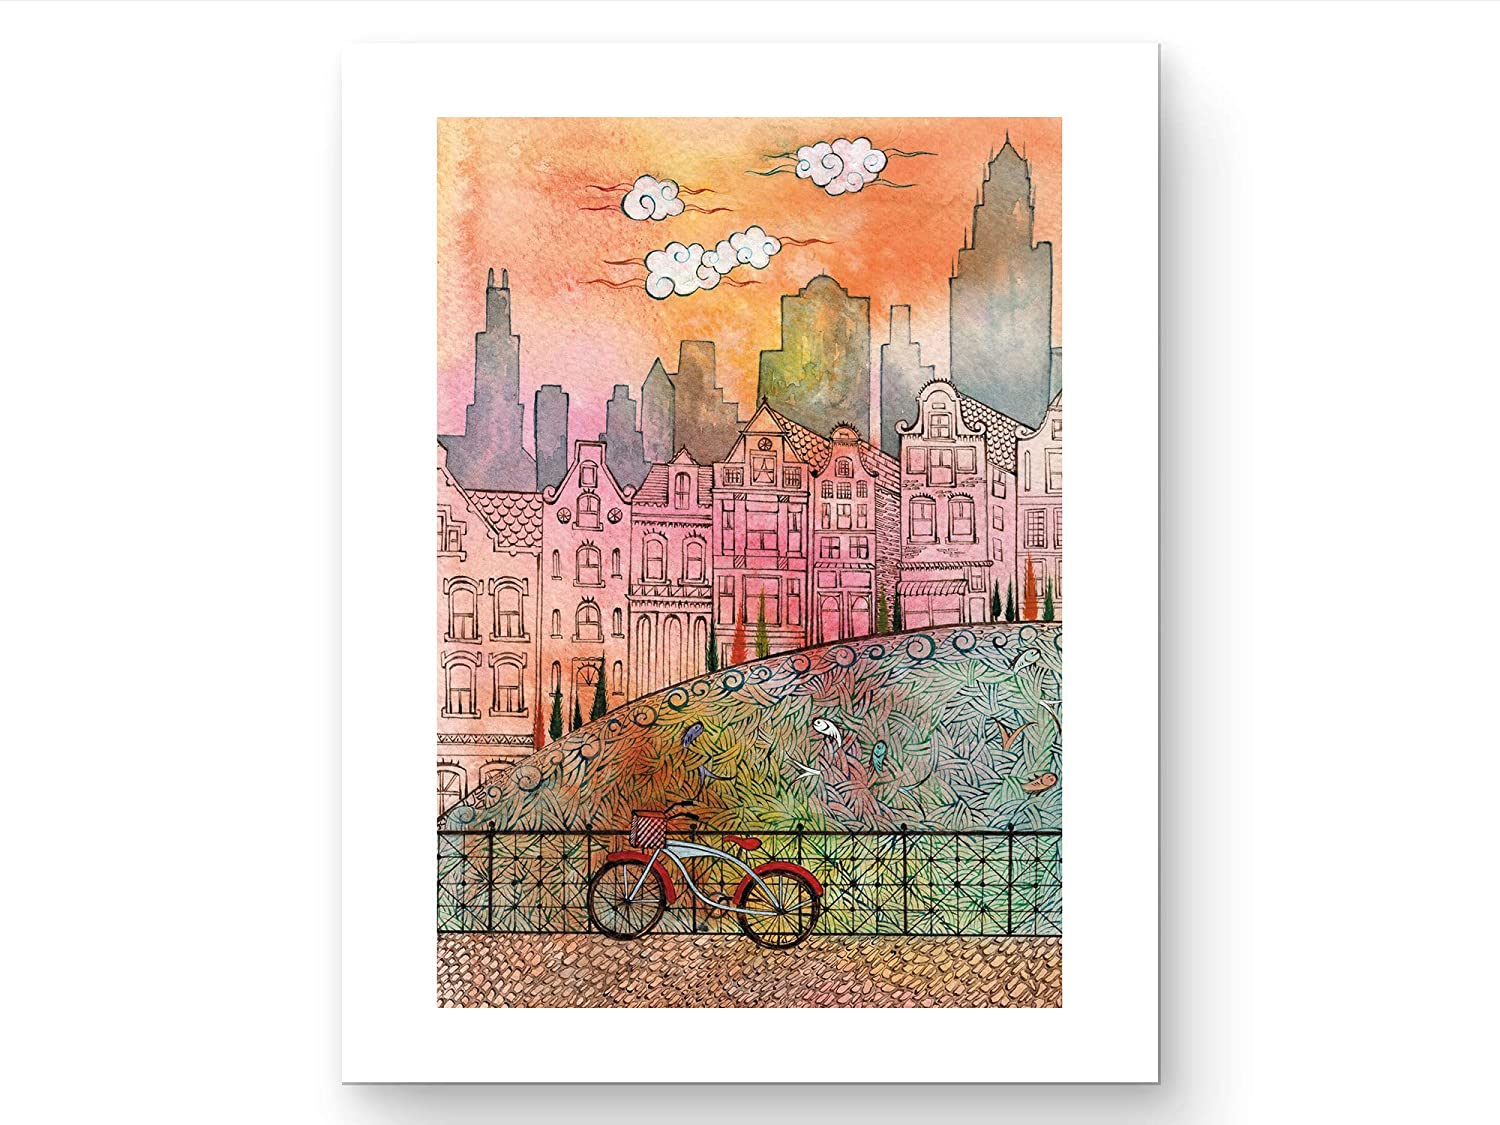 Chicago Art Print - Watercolor Wall Art - Bicycle Wall Art for Bedroom, Dining Room, Living Room, Bathroom - Unframed - 8x10 - Chicago Cityscape Wall Art